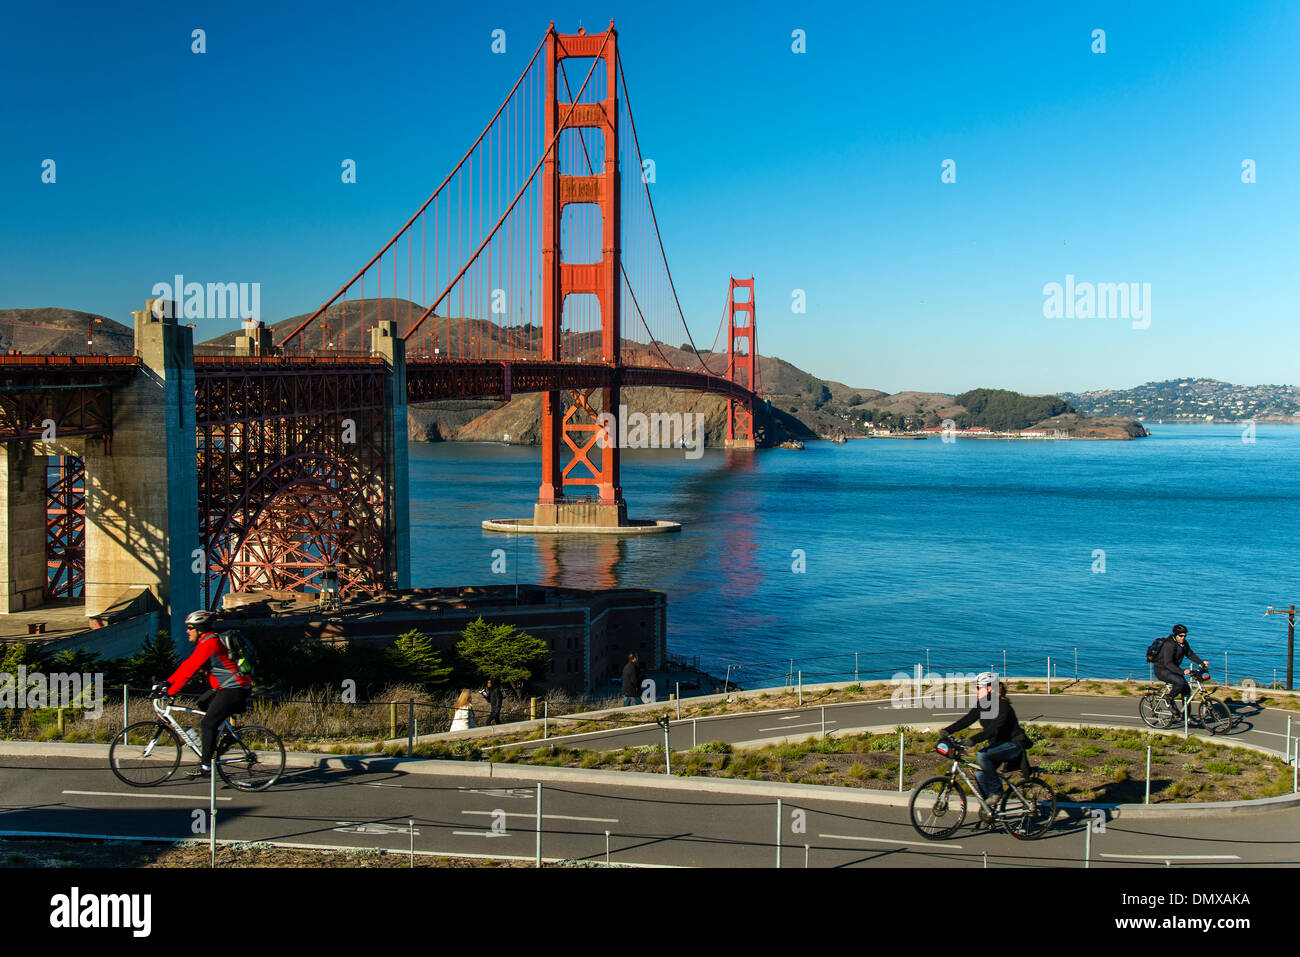 Cyclists riding on a bike lane with Golden gate suspension bridge behind, San Francisco, California, USA - Stock Image